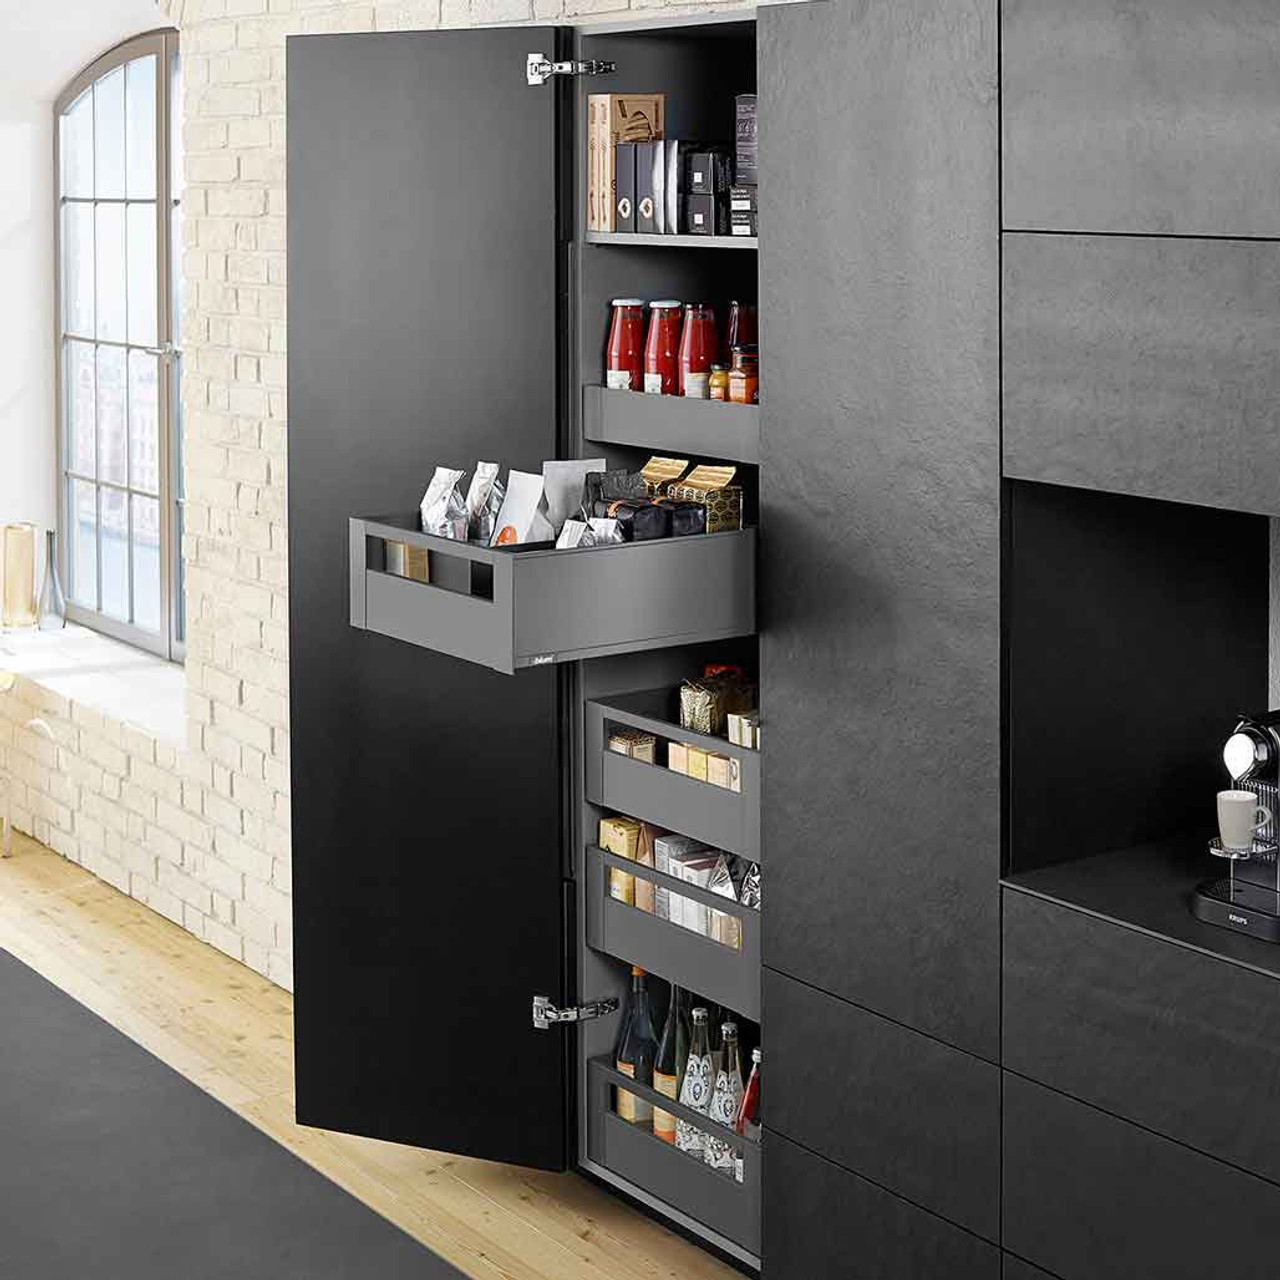 300mm LEGRABOX SPACE TOWER